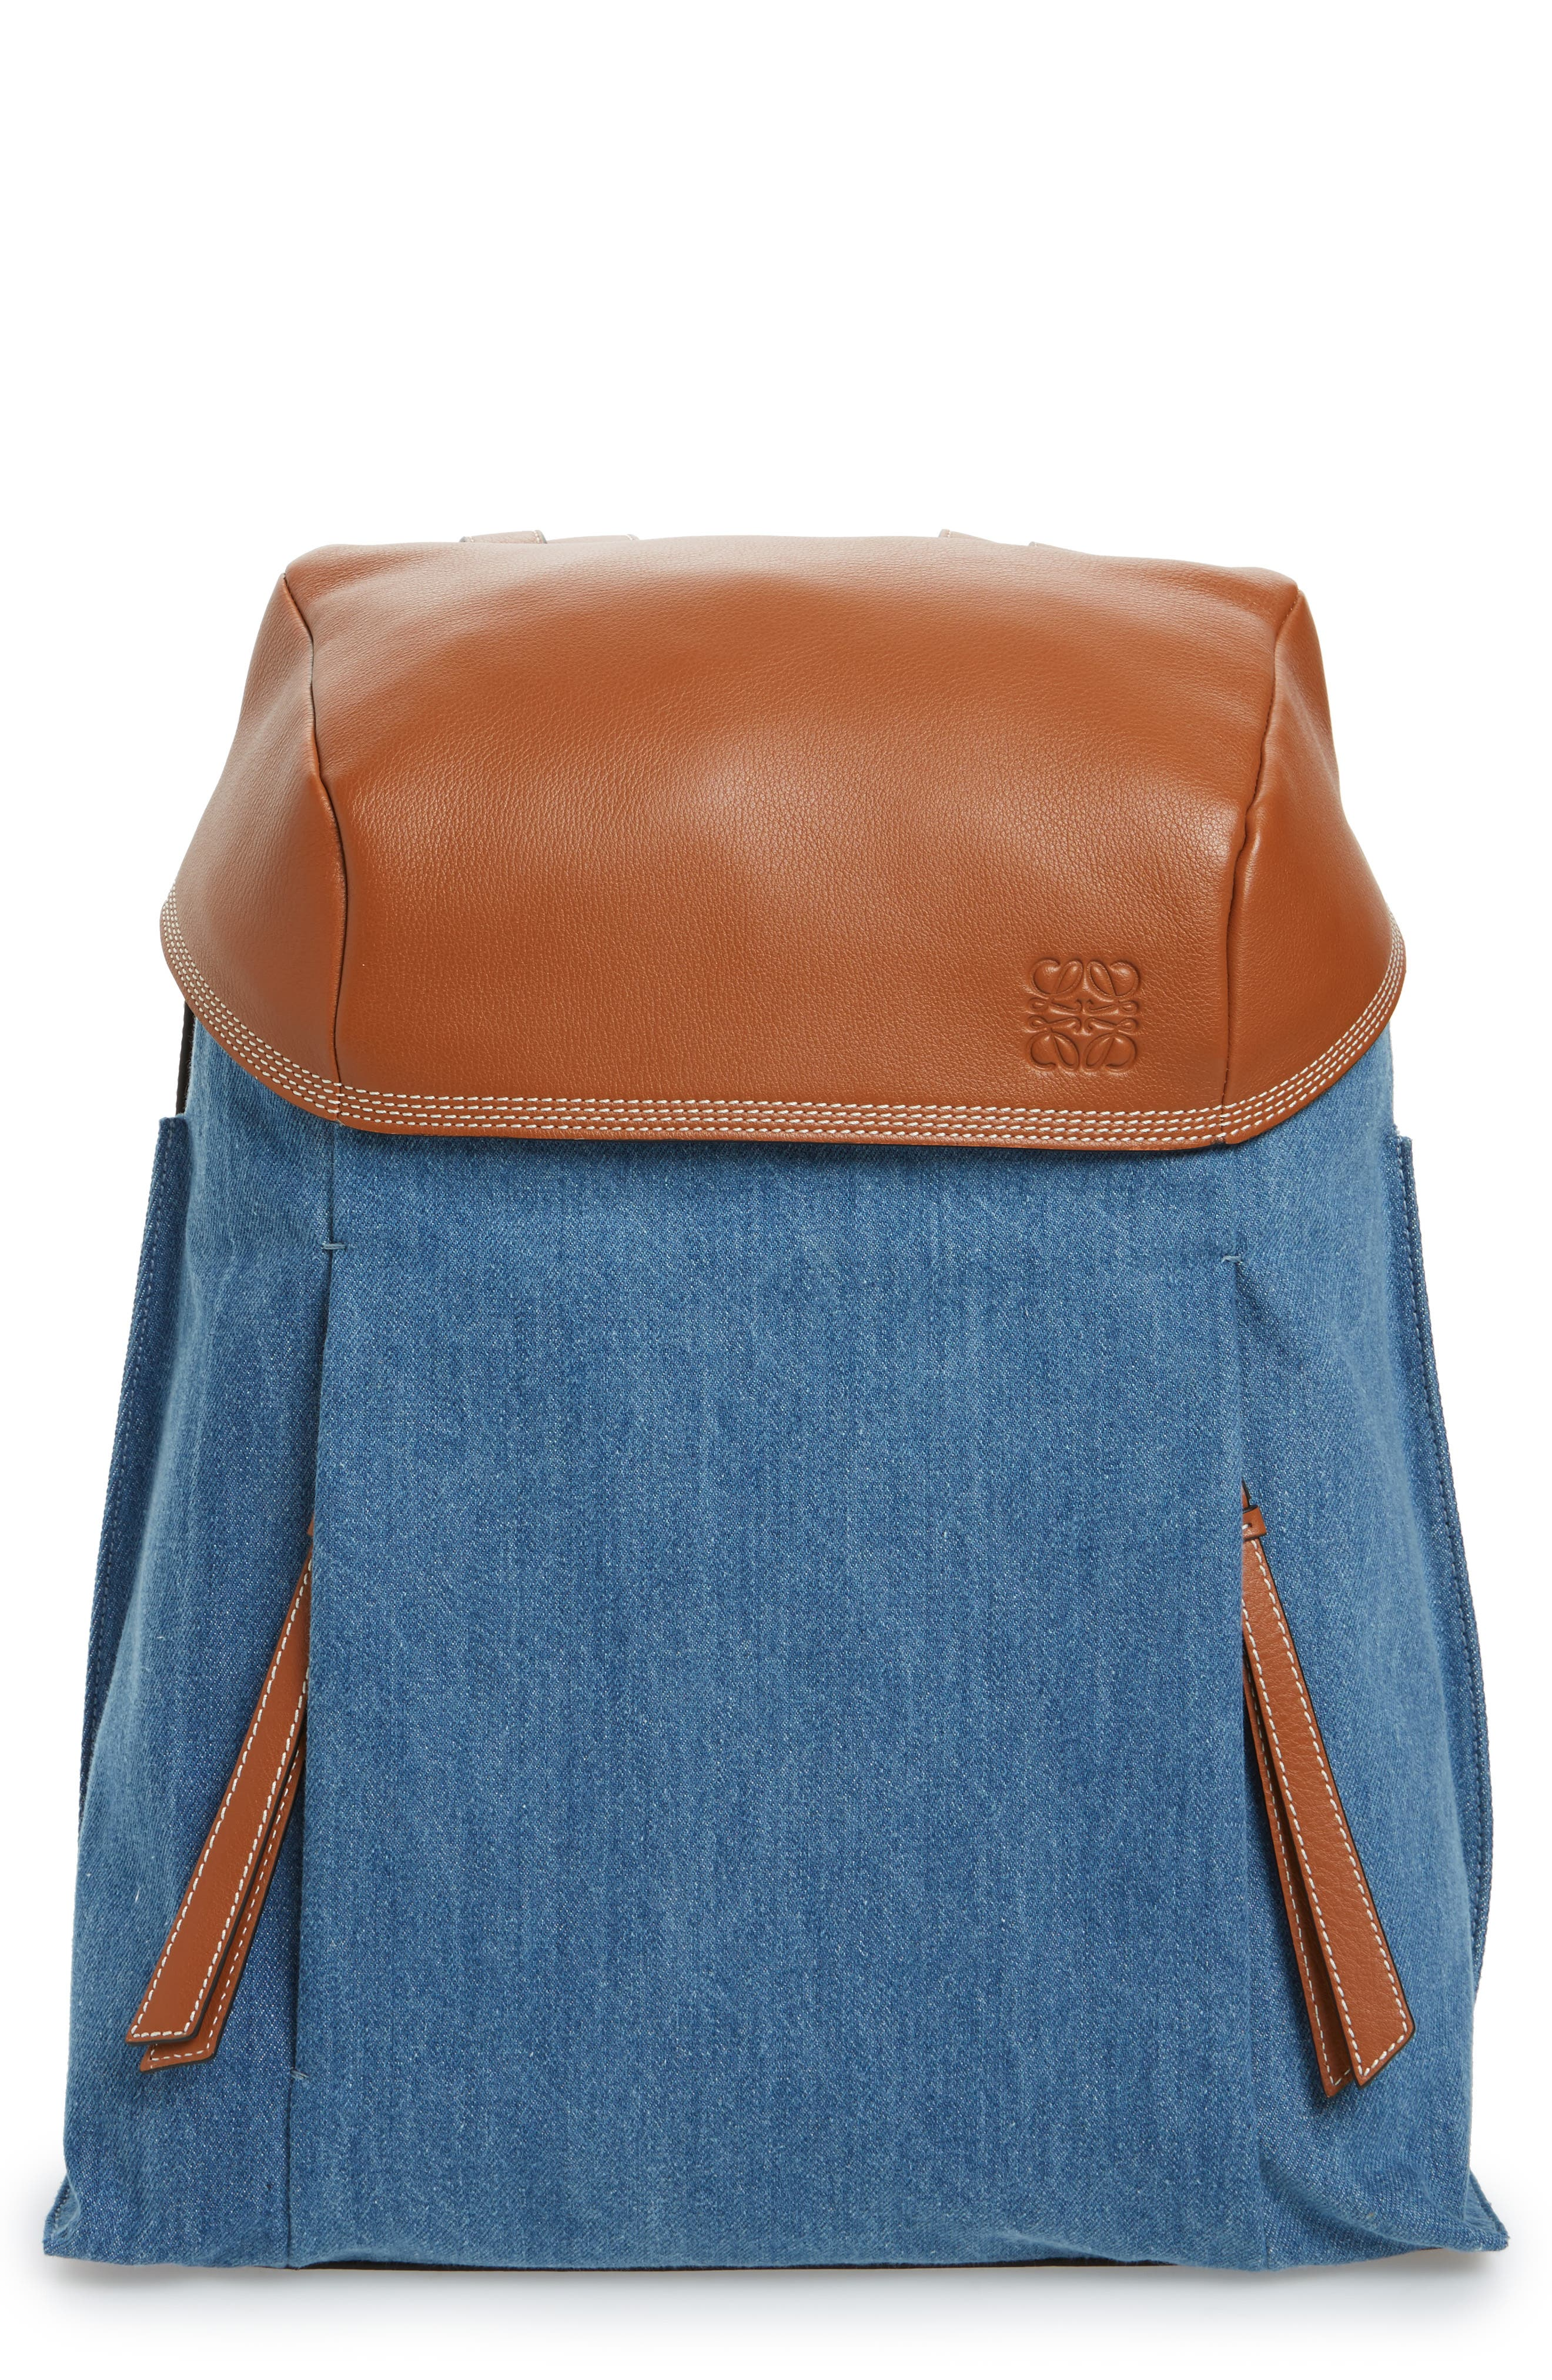 Loewe T Small Denim & Leather Backpack